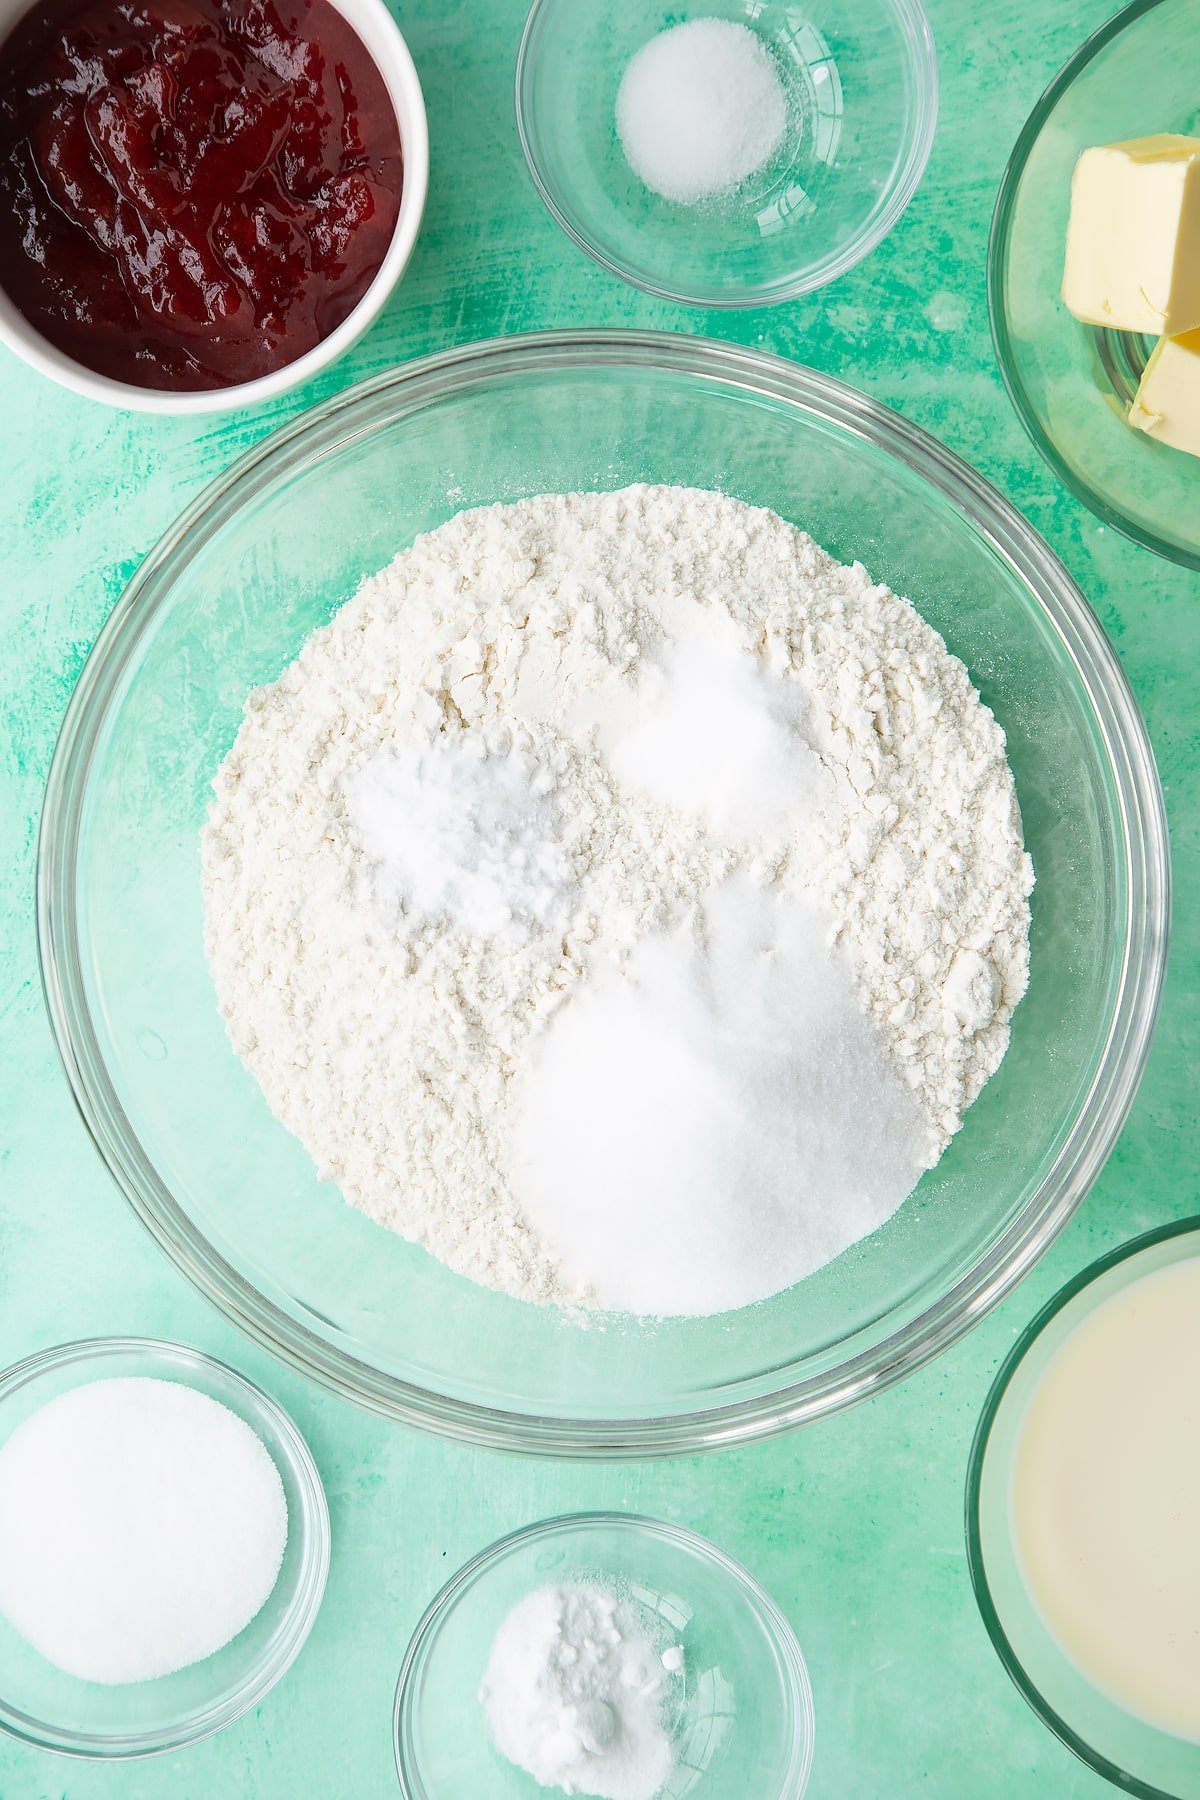 Flour, sugar, salt and bicarbonate of soda in a bowl. Ingredients to make dairy free scones surround the bowl.